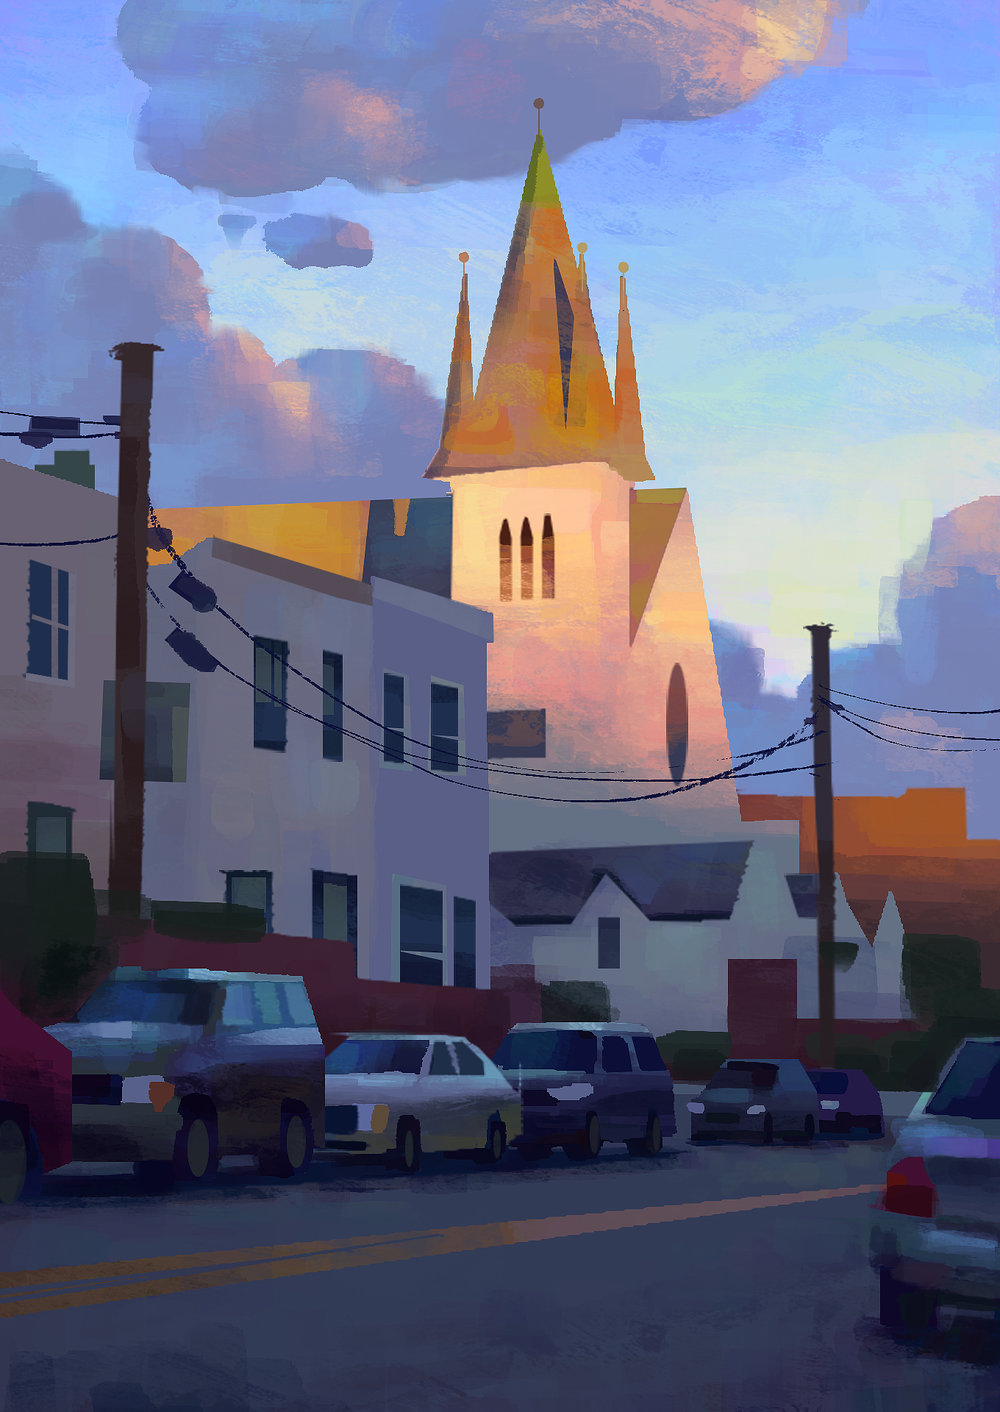 Digital Painting - Astoria NY